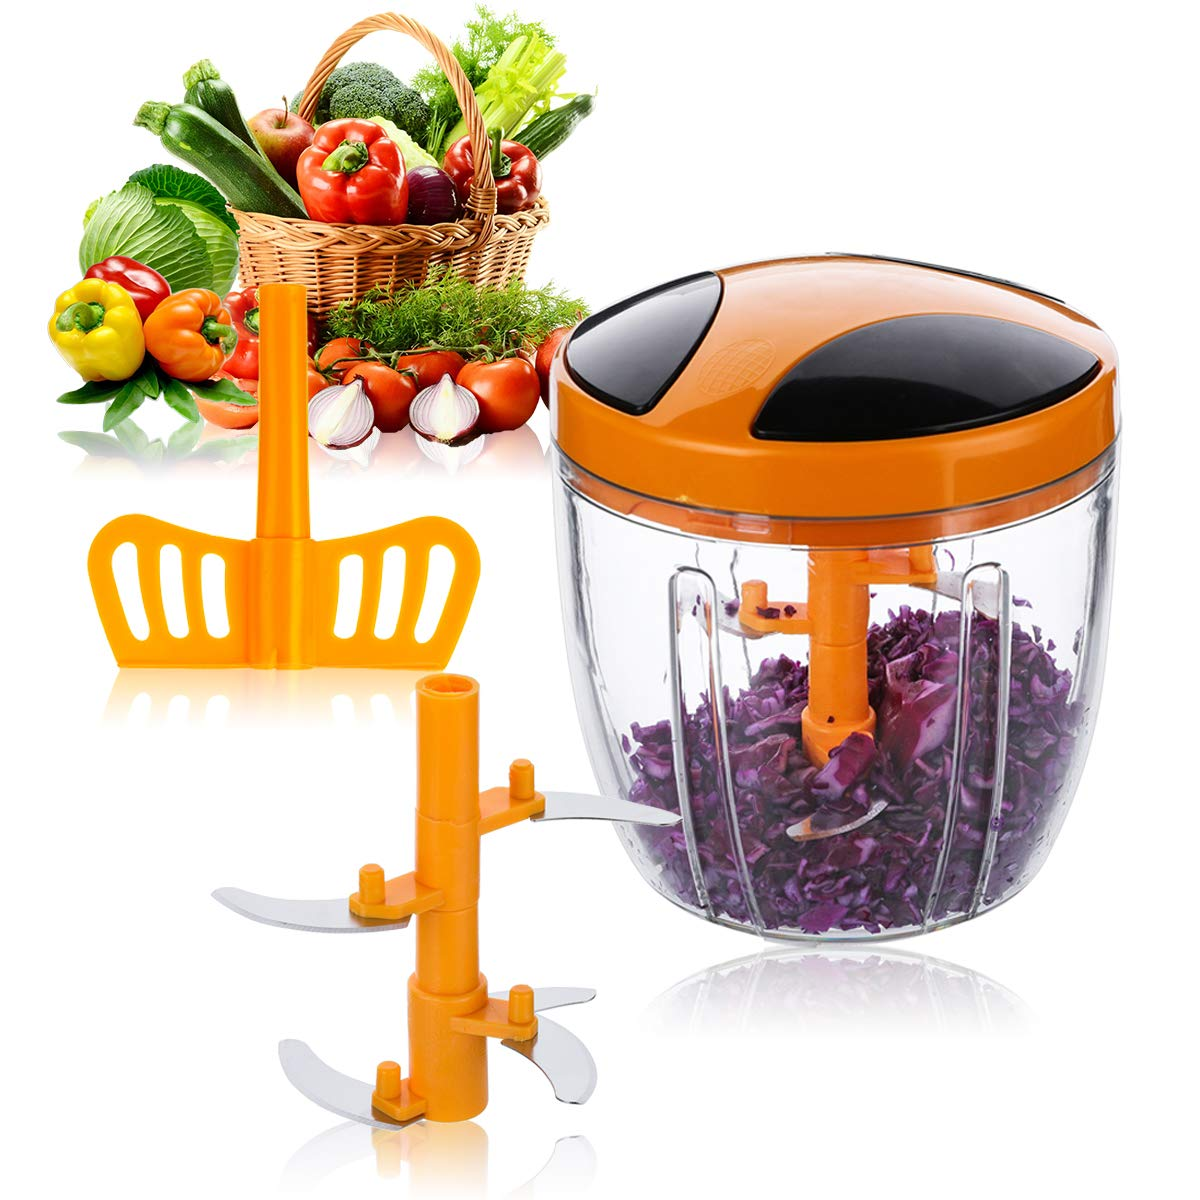 Haipei 900 ml Food Choppers Kitchen Essential Vegetable Processor Chopper Orange Multifunction Manual Food Chopper, Pull String Blender with 5 Sharp Stainless Steel Blades Groopmoon